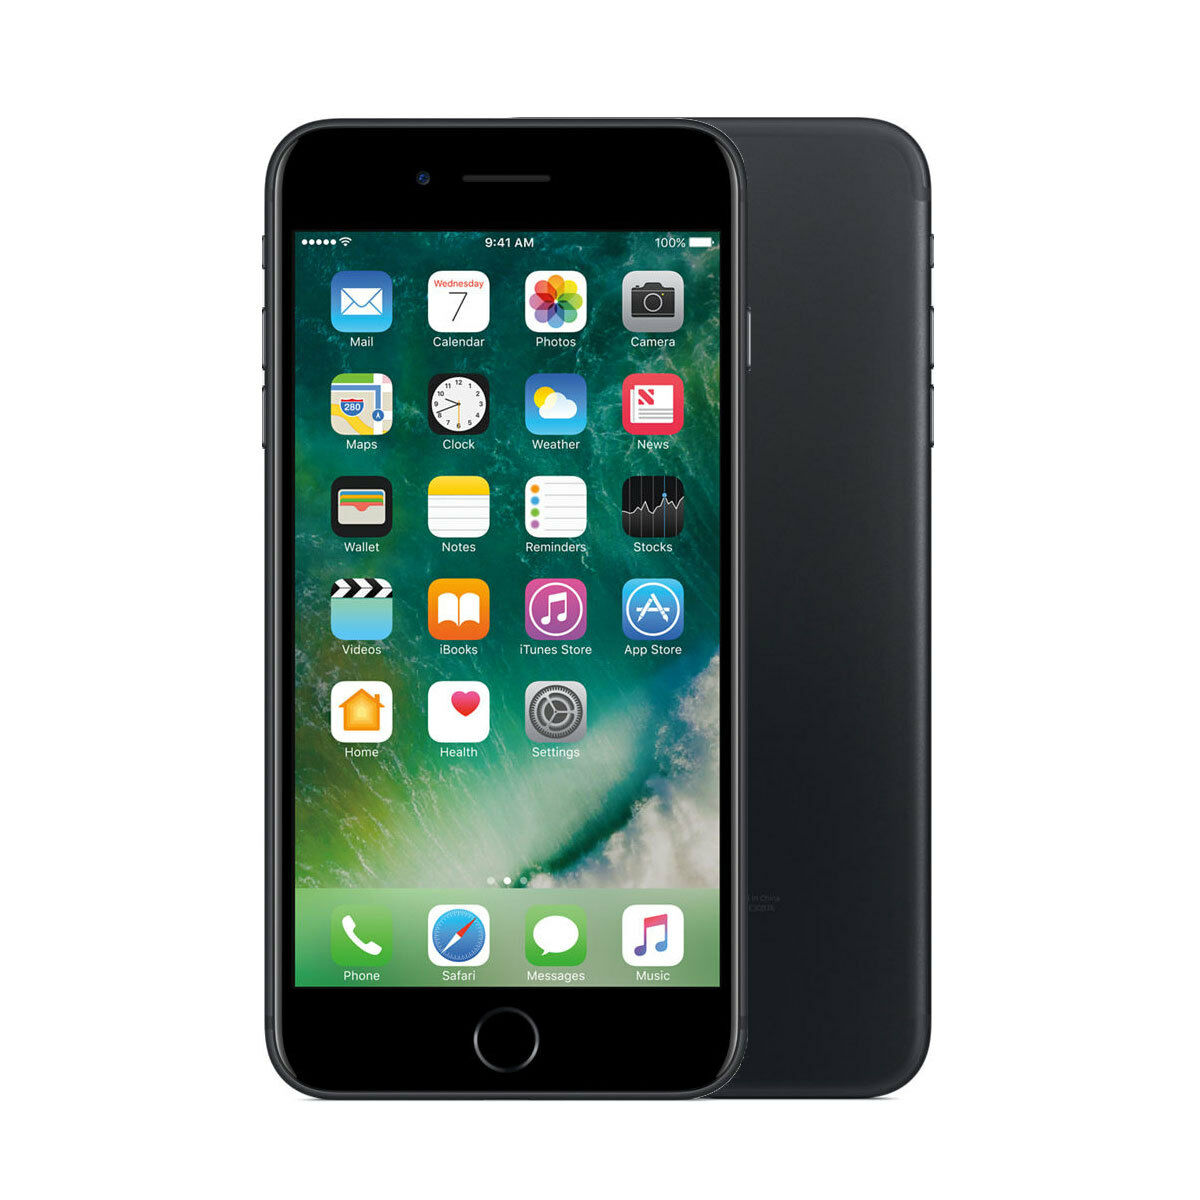 Apple iPhone 7 Plus 128GB Factory Unlocked 4G LTE iOS WiFi Smartphone